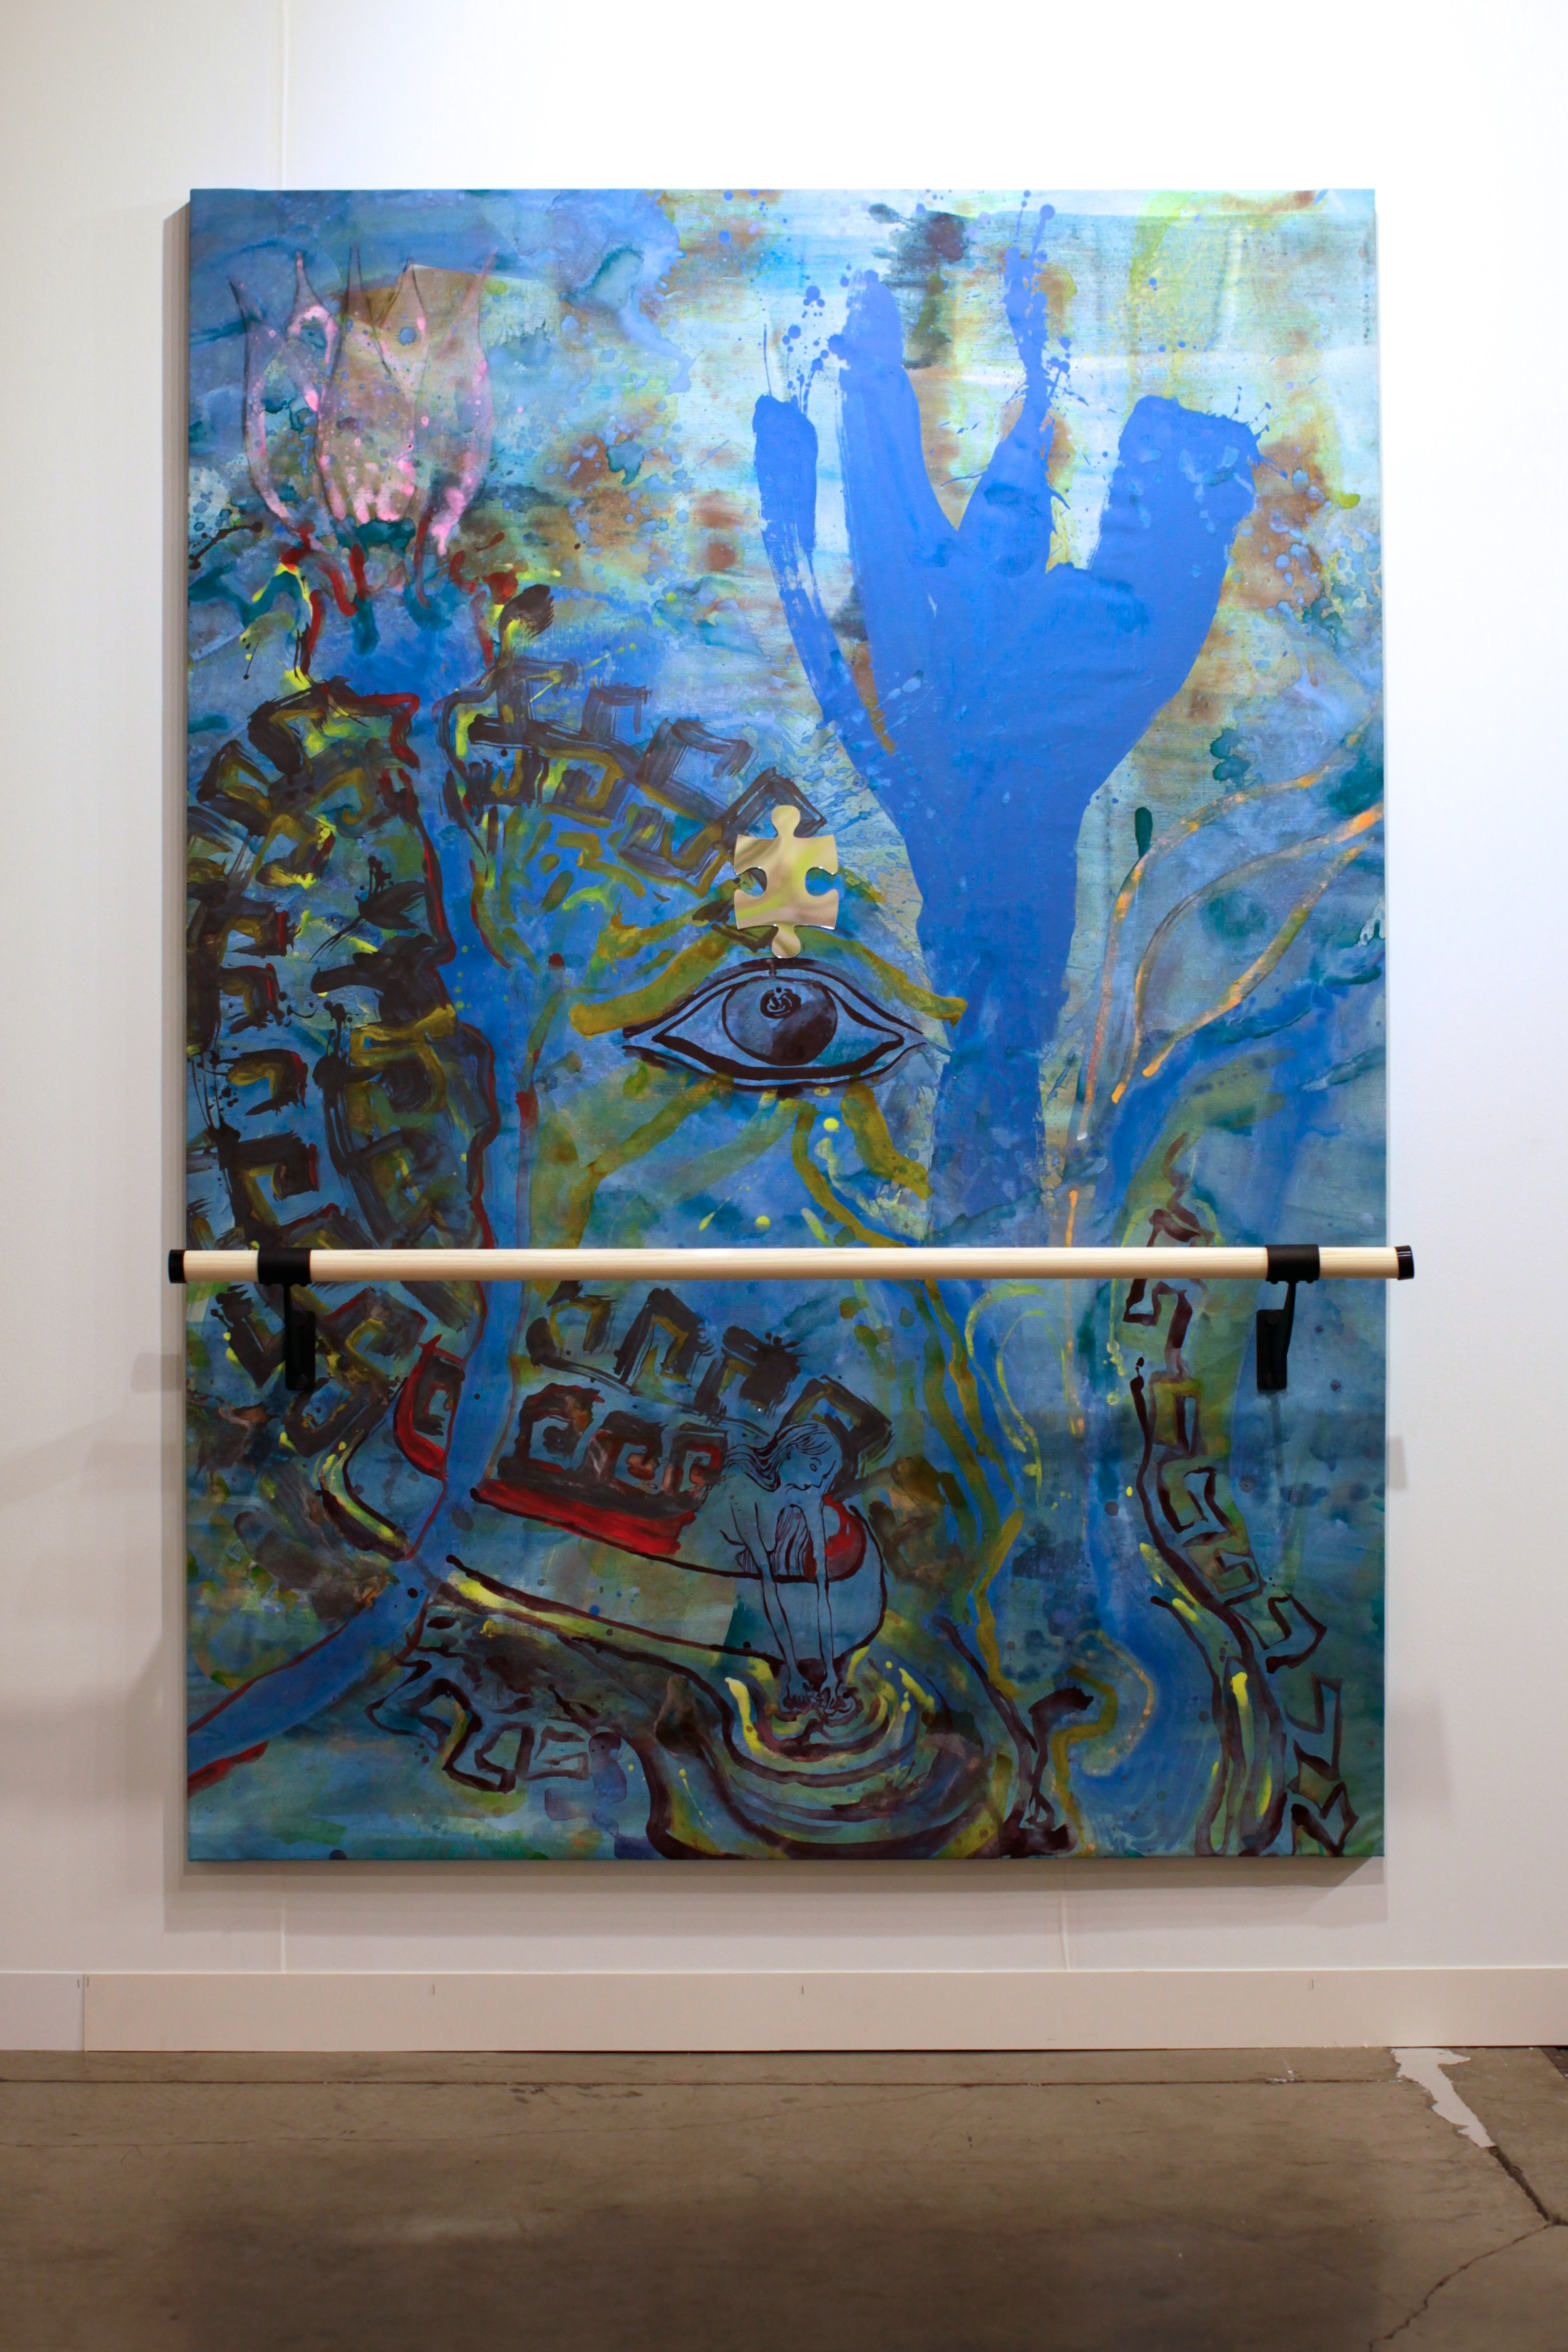 Try Listening, 7x5 feet, acrylic, mirrored plexiglass, ballet barre on linen, 2014